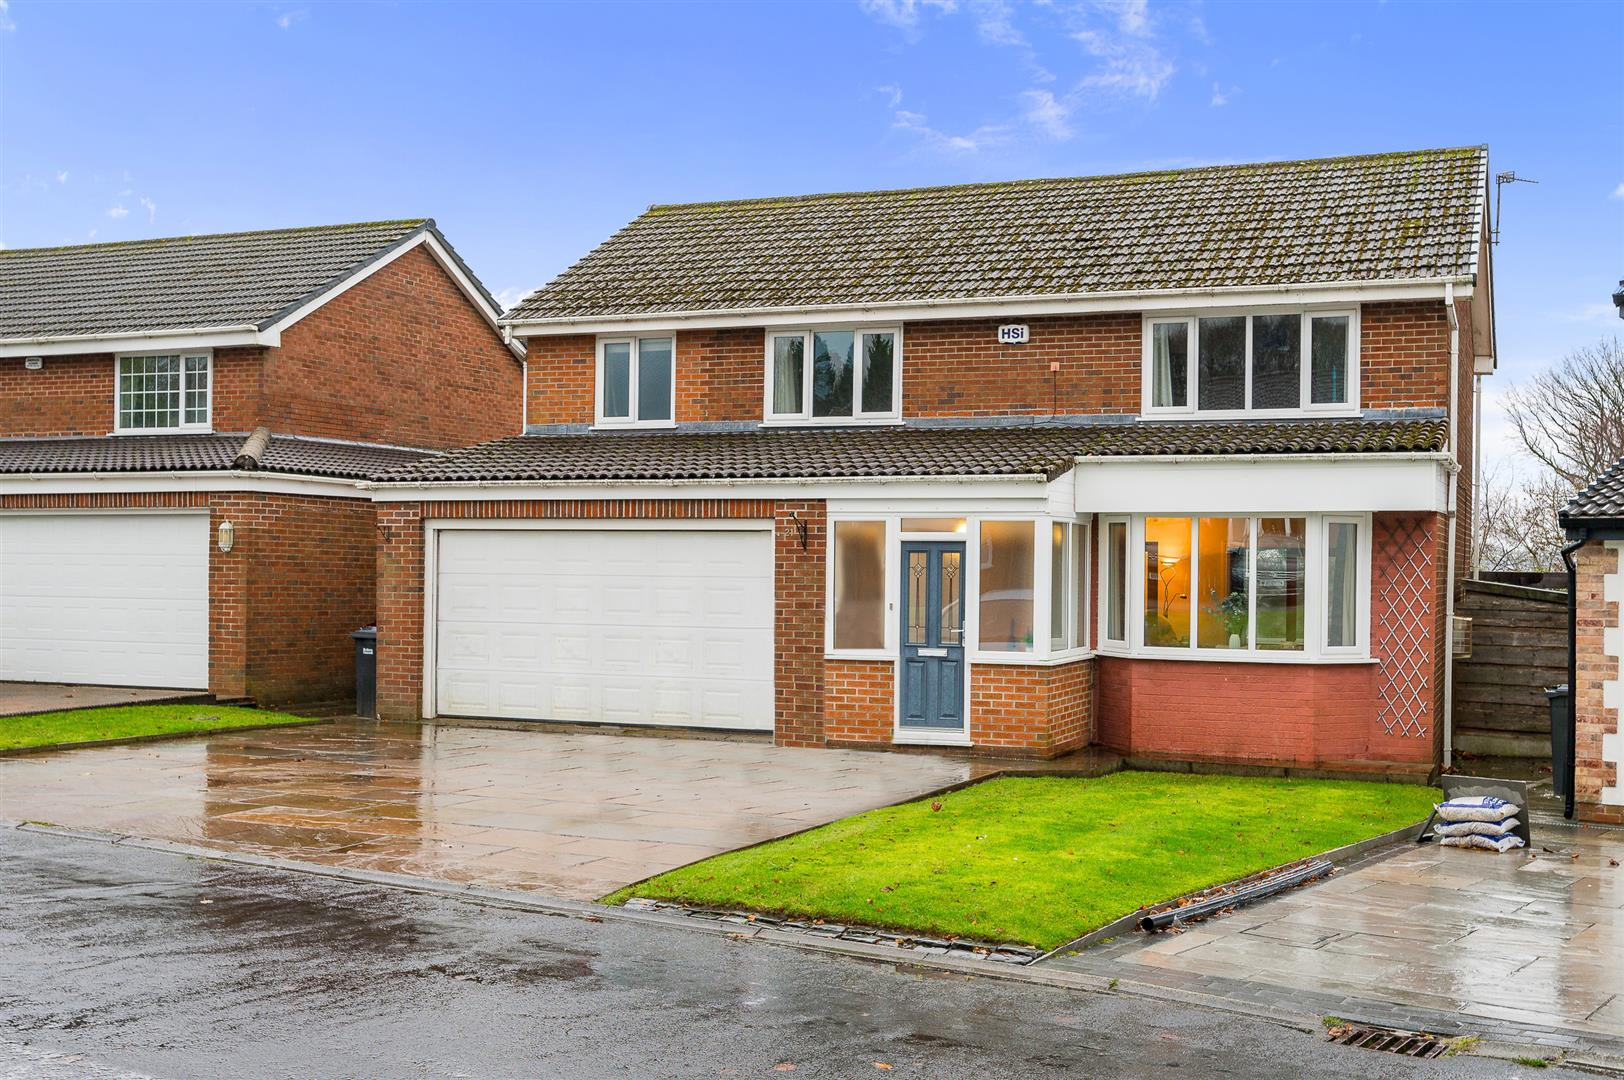 4 bedroom house Sale Agreed in Bolton - Main Image.